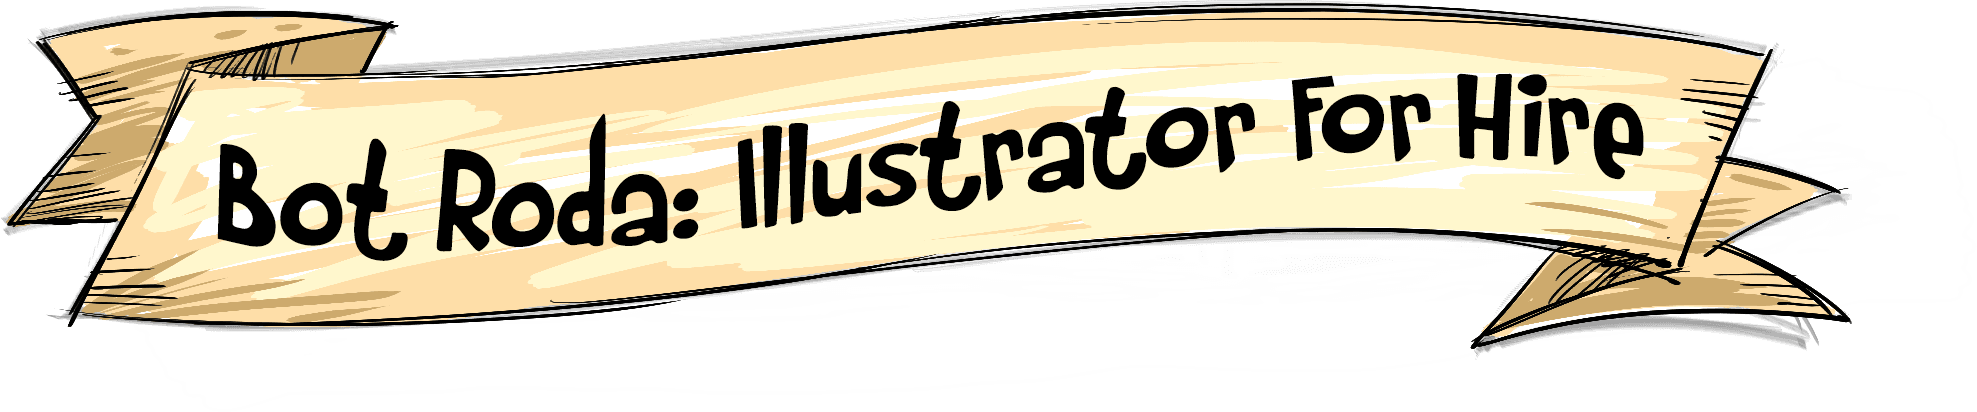 Bot Roda: Illustrator For Hire